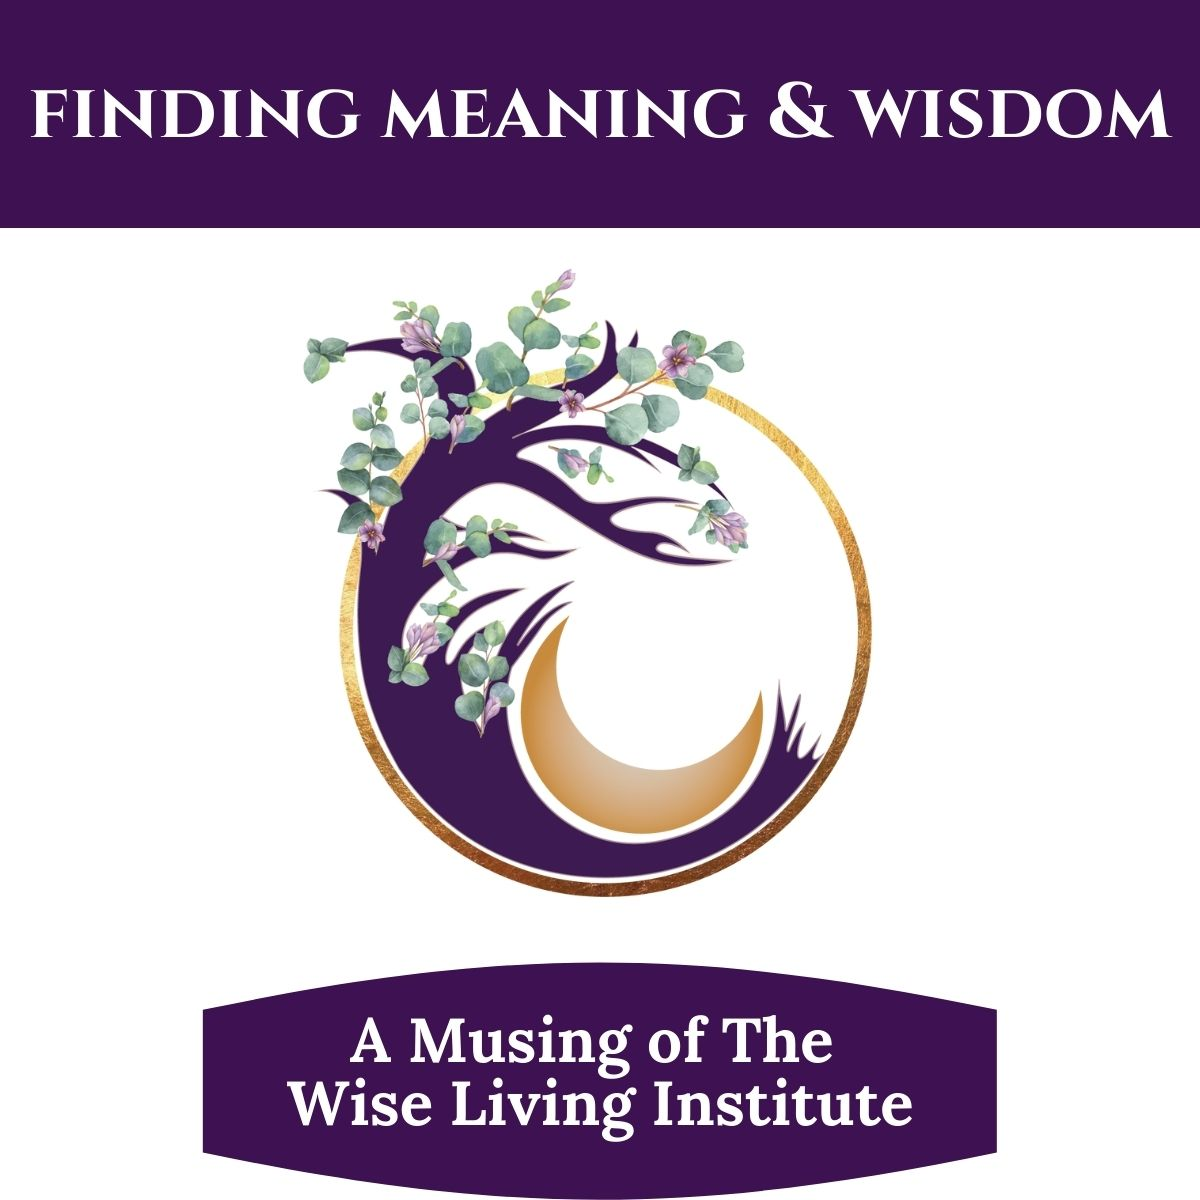 Finding Meaning & Wisdom